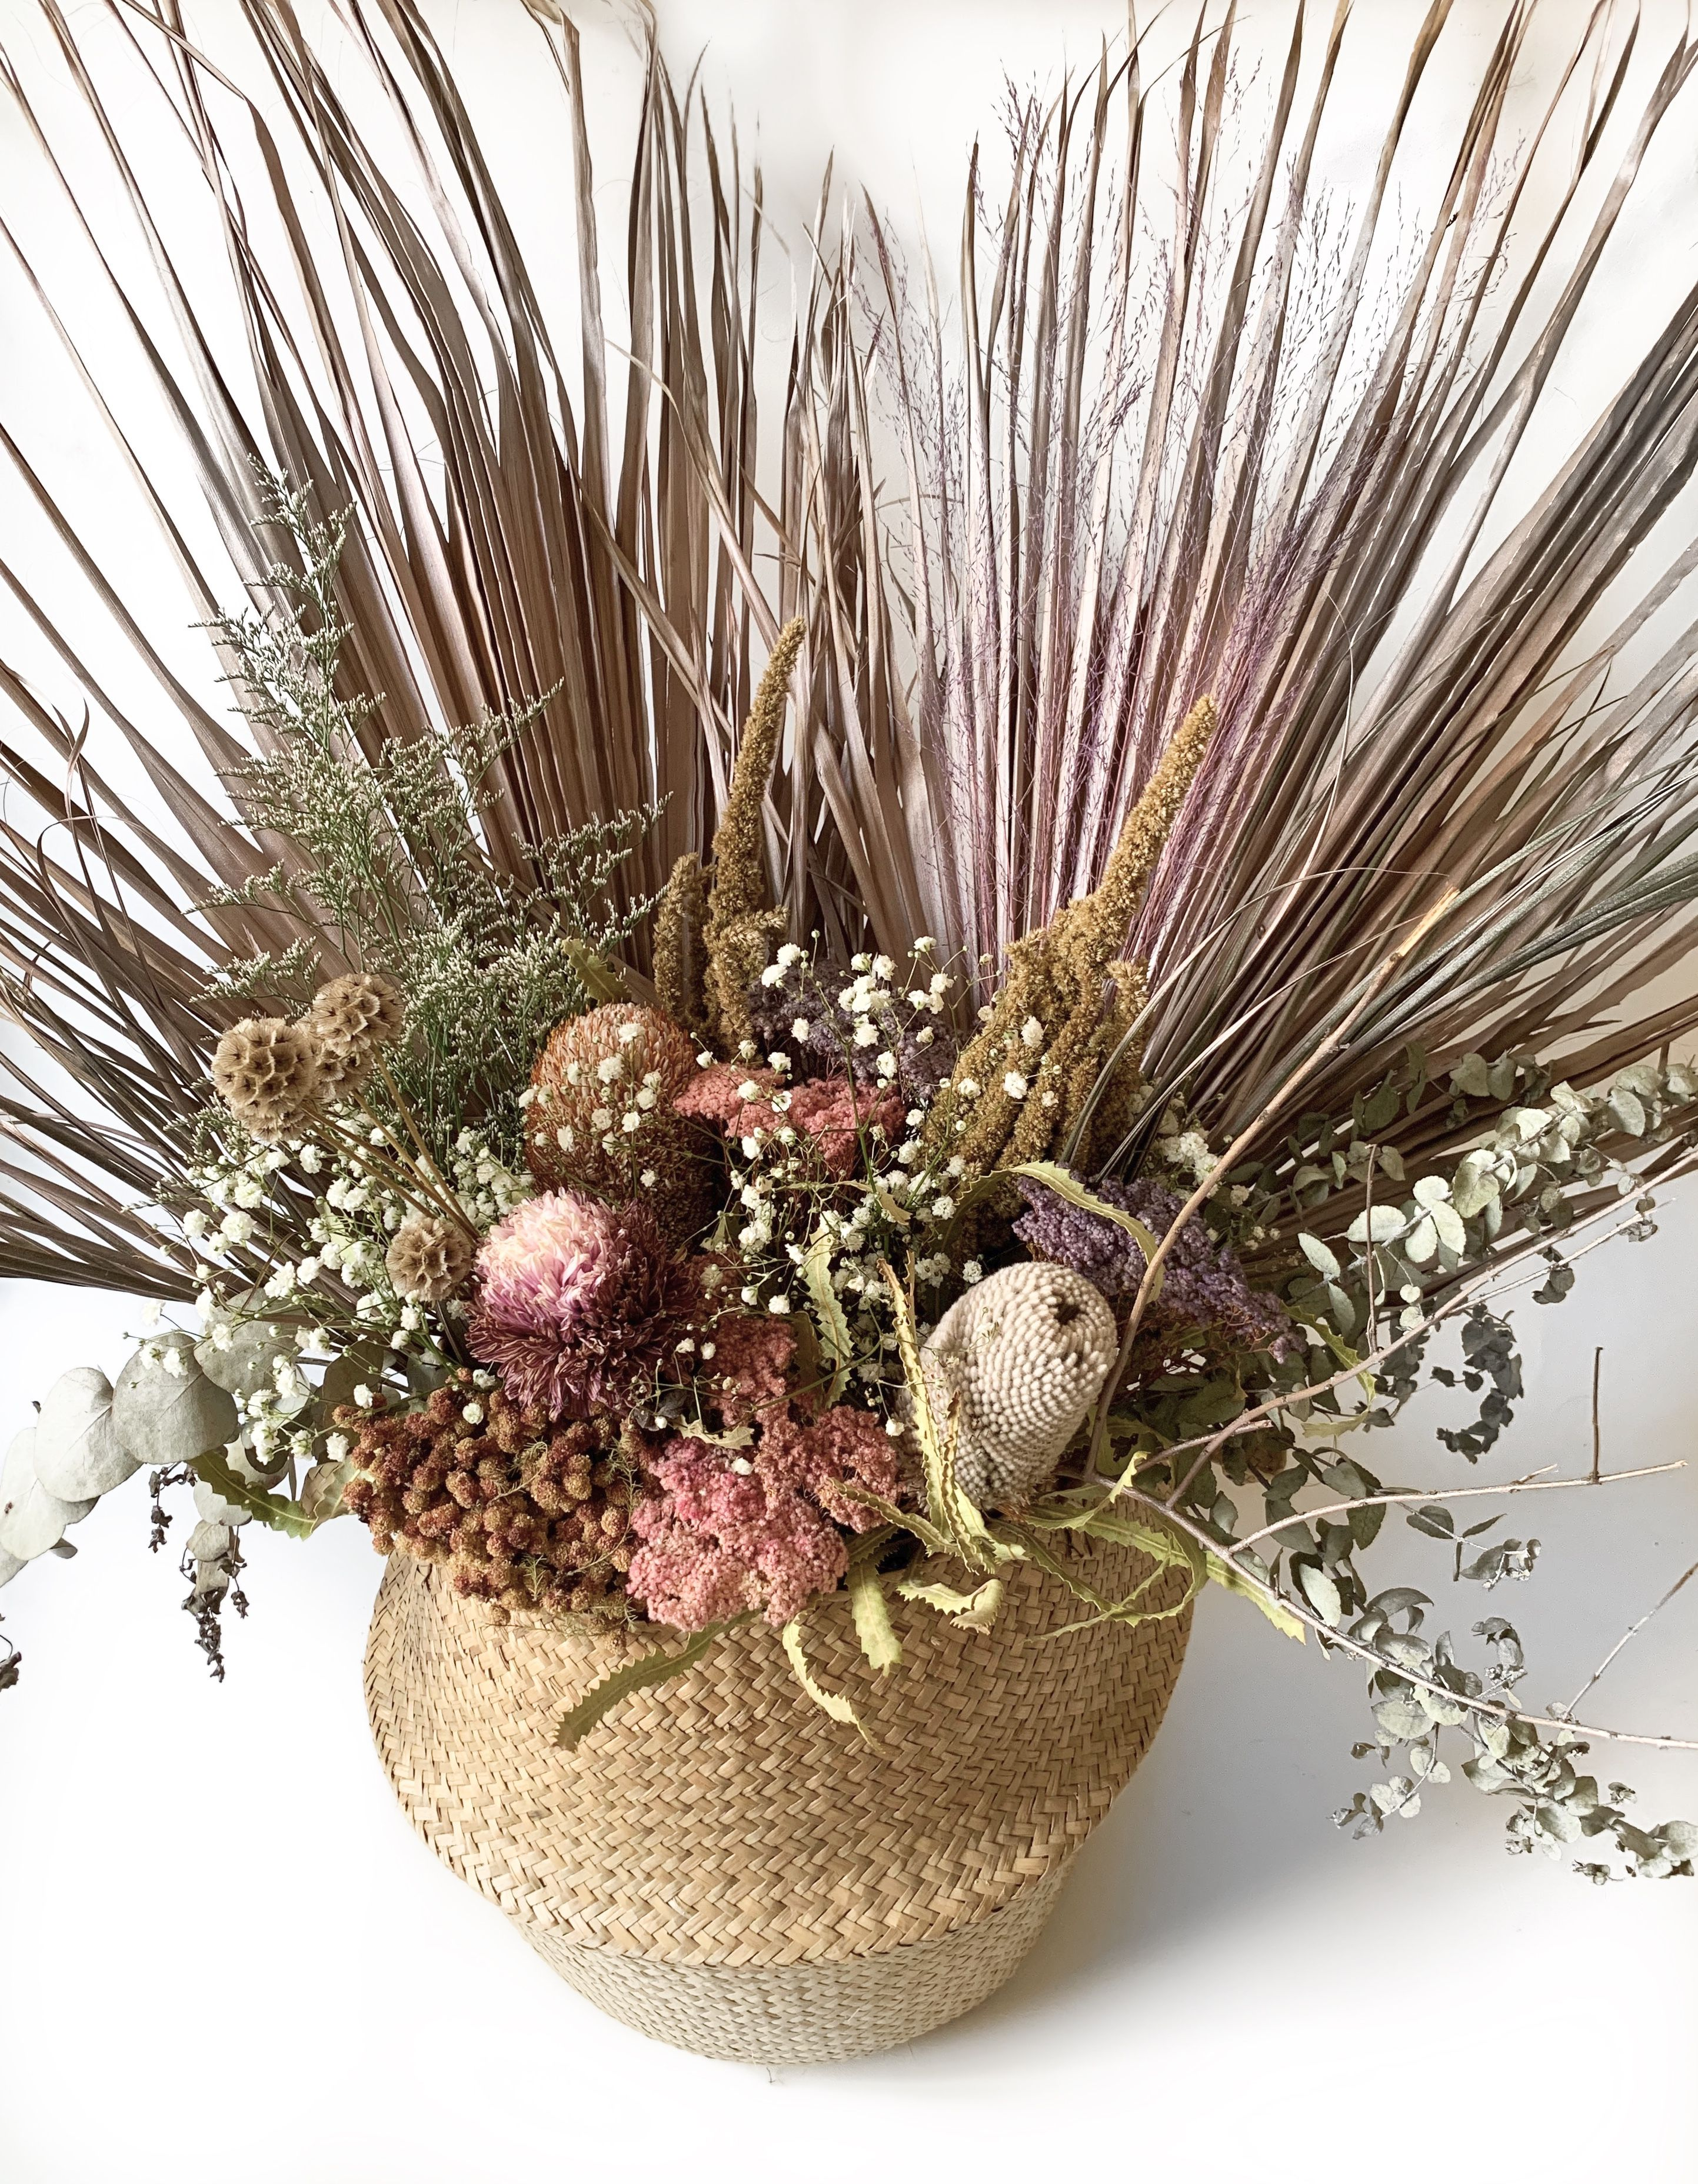 Large Basket Arrangement Using Dried Palm Leaves And Flowers